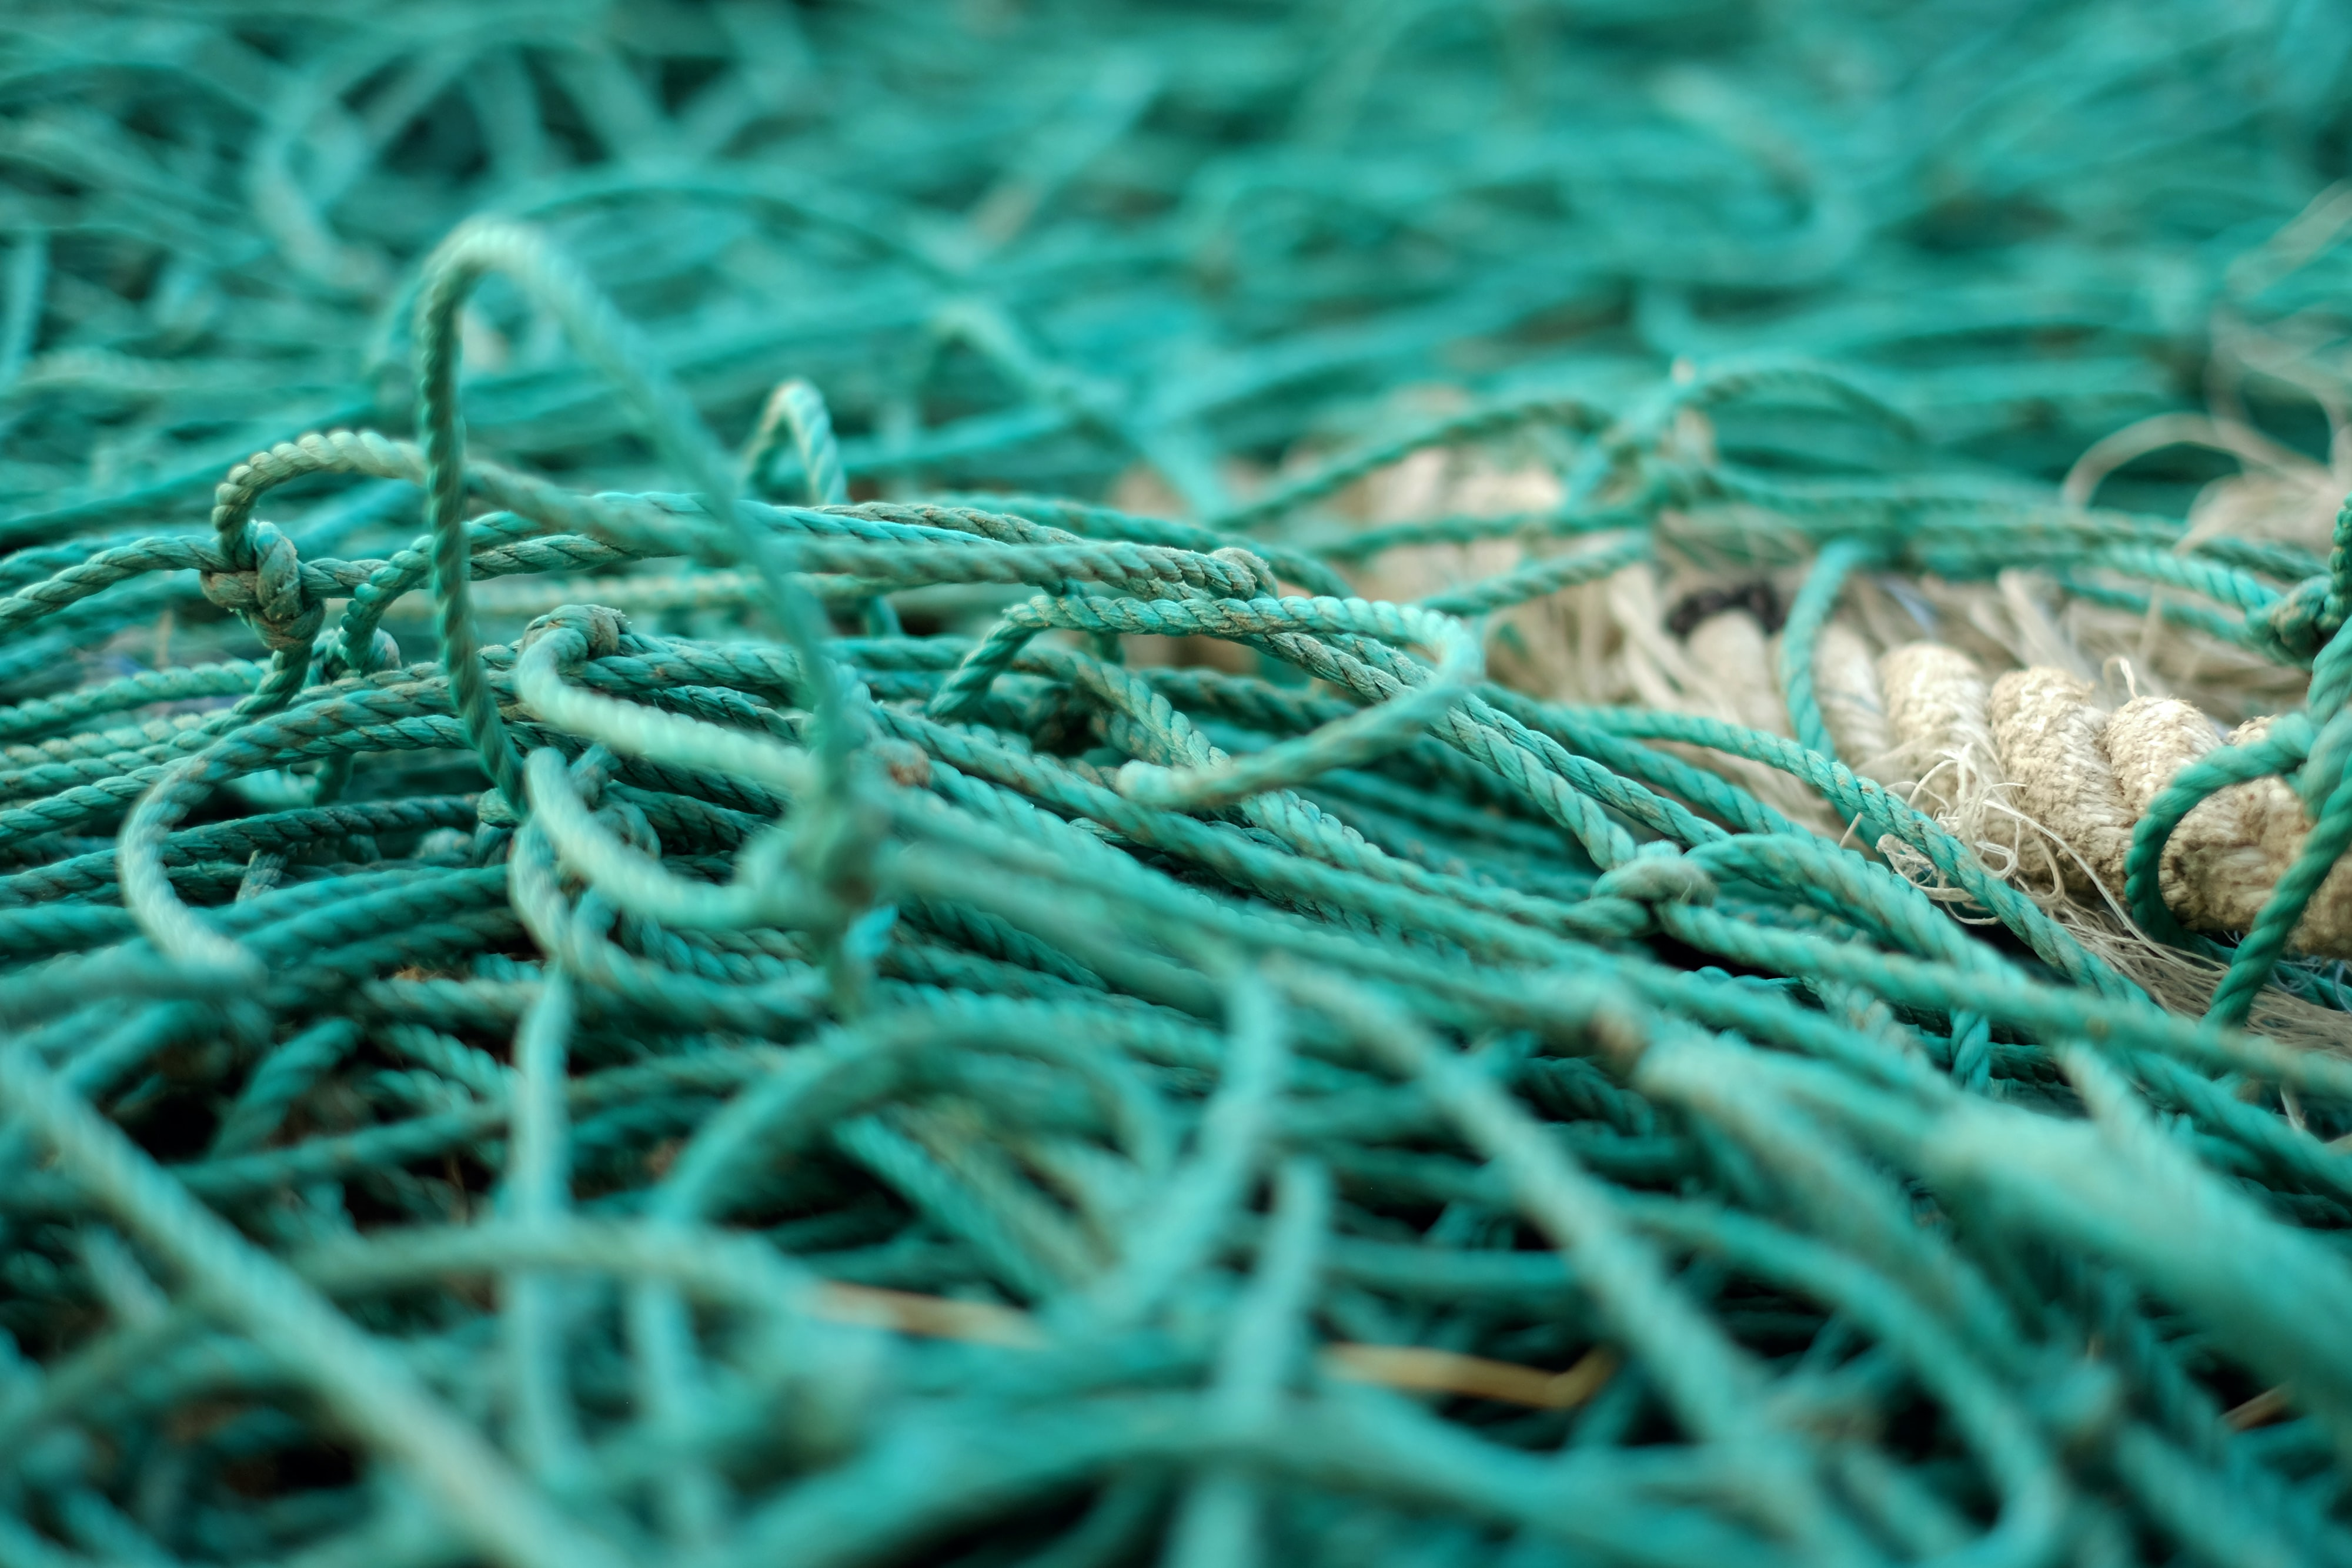 tilt shift photography of green ropes